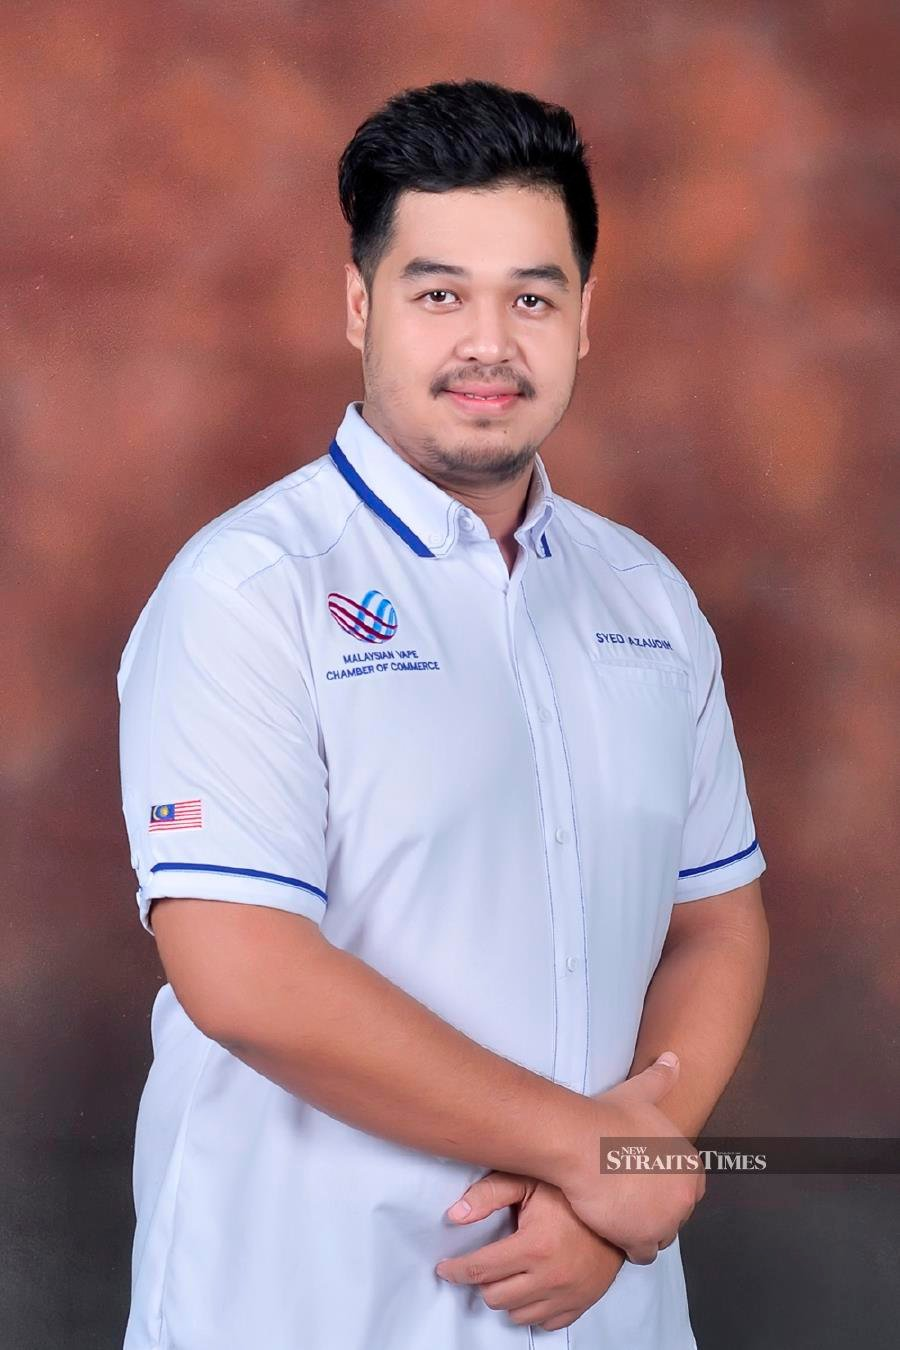 Malaysian Vape Chamber of Commerce (MVCC) president Syed Azaudin said ban on vape and e-cigarette will severely dent retailers and create an illegal market with unregulated vape products which is far more dangerous.